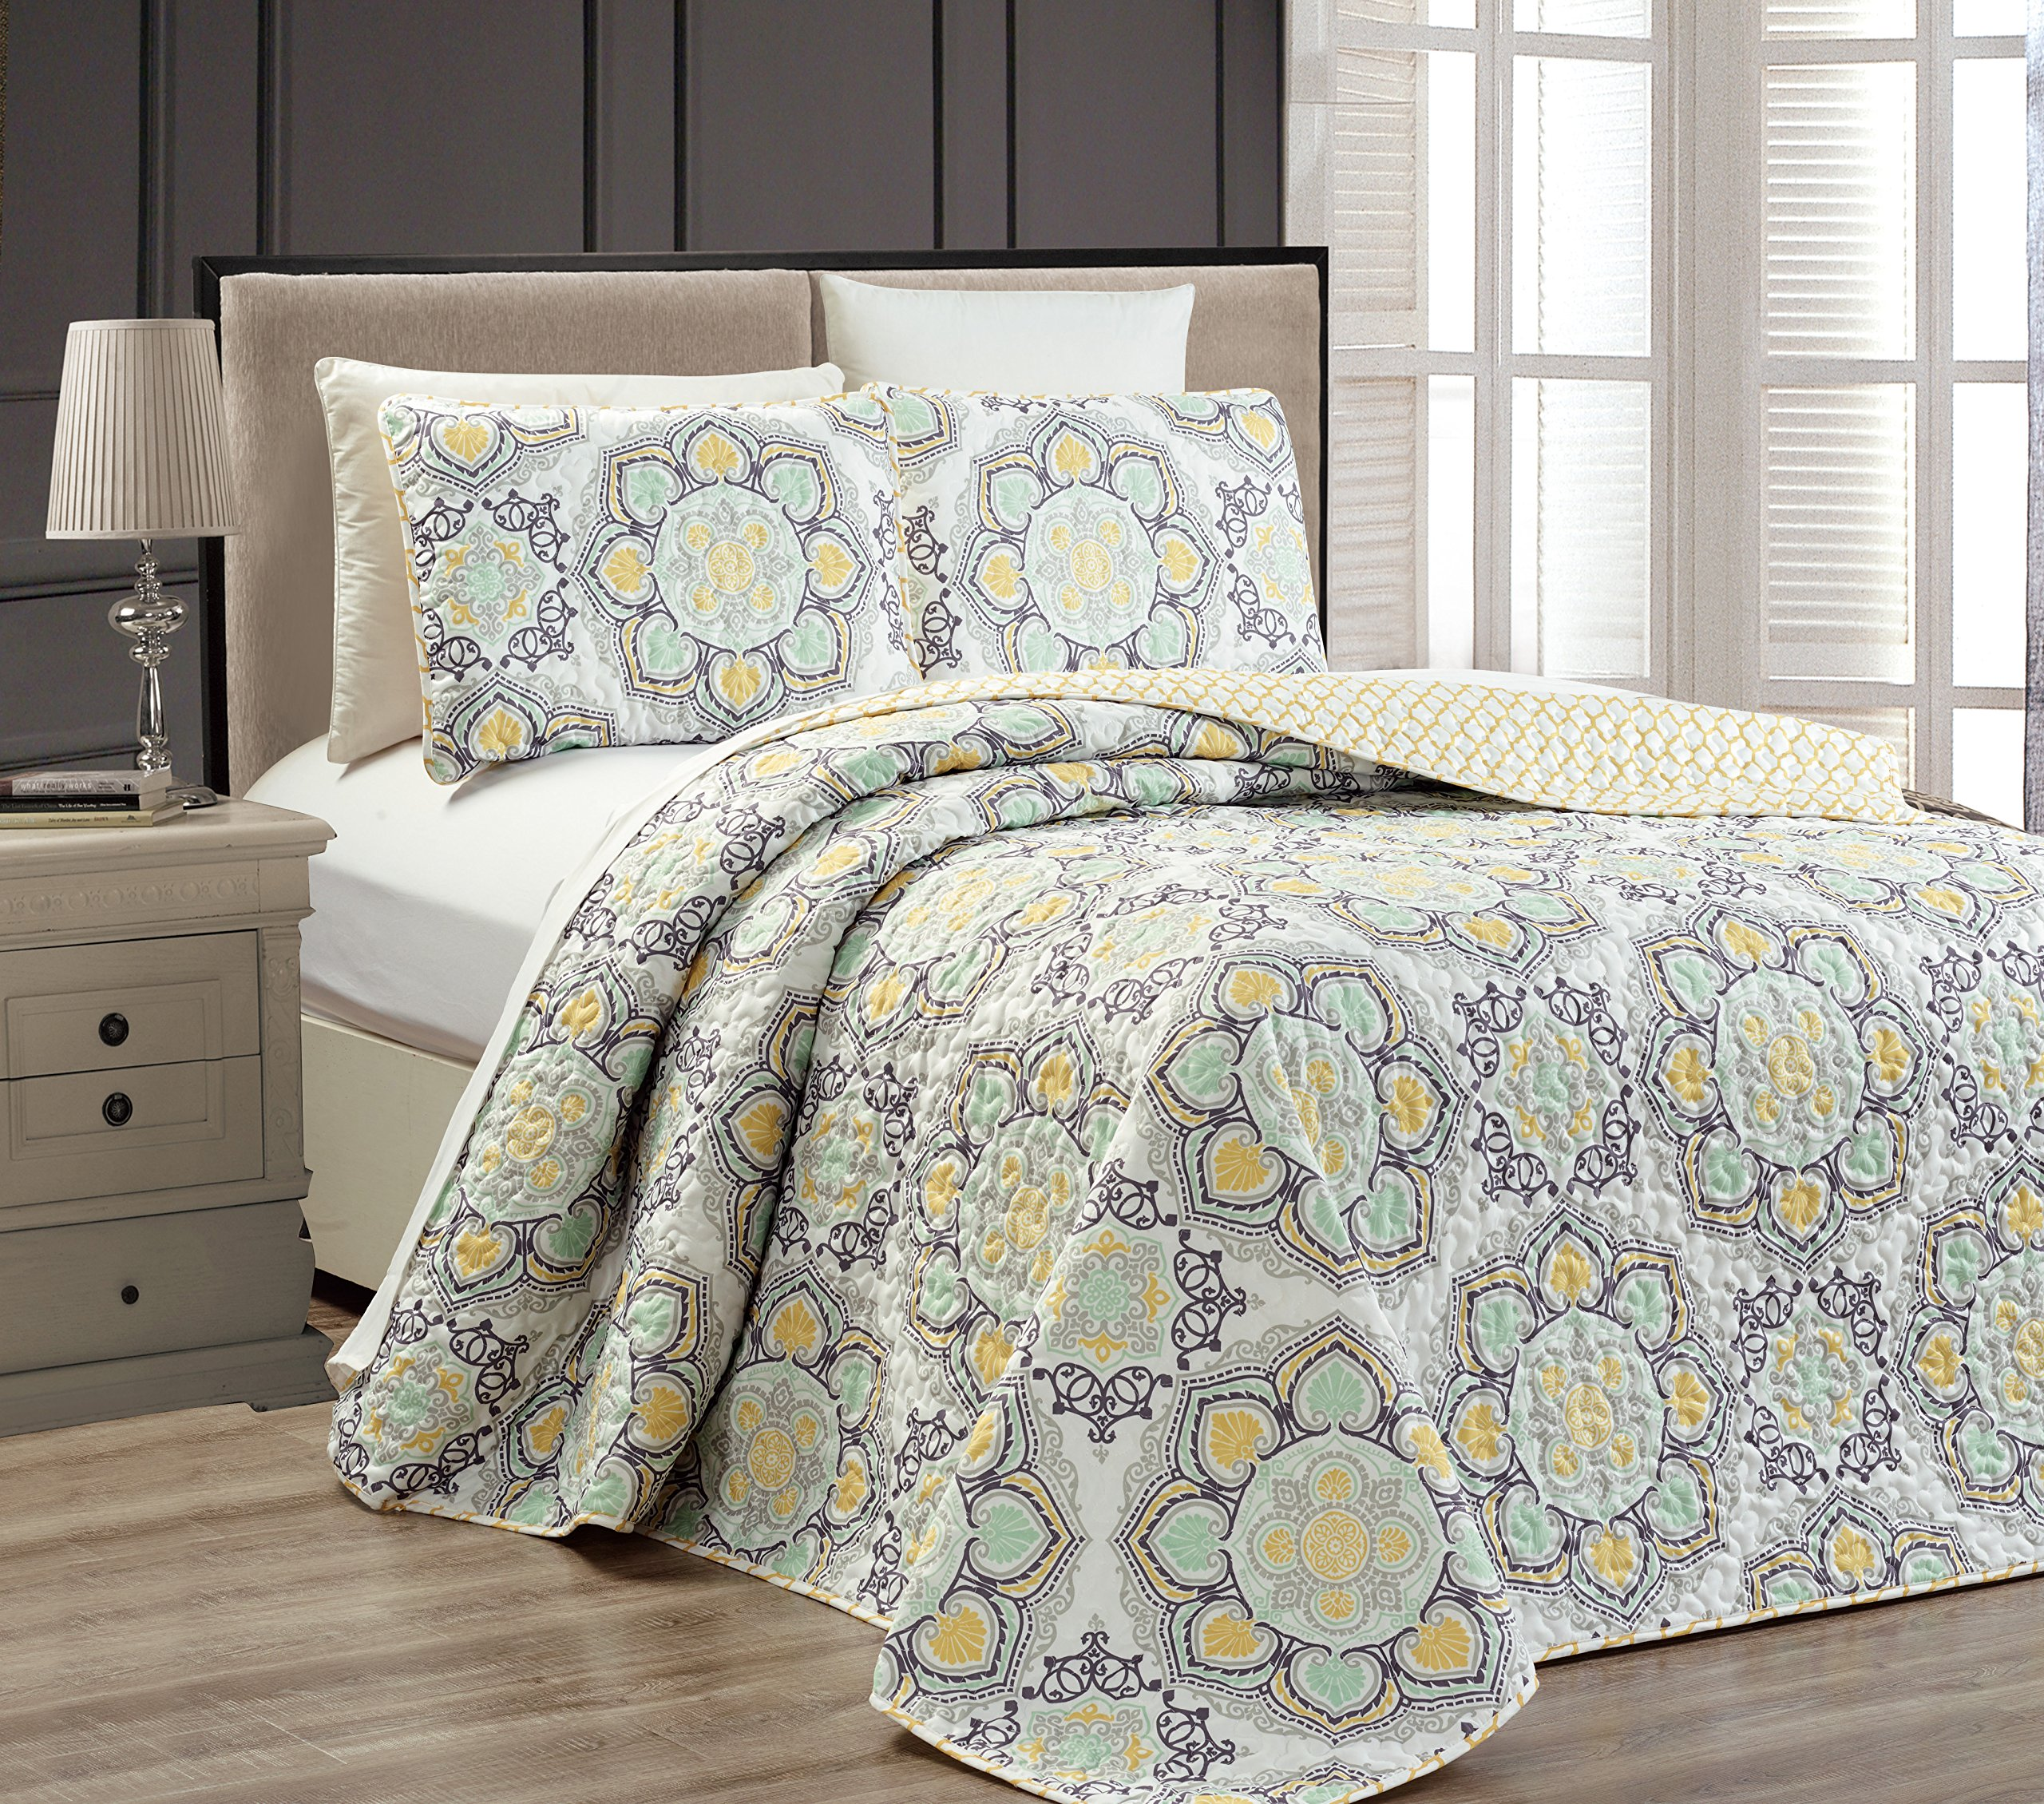 Fancy Collection 3 pc Bedspread Bed Cover Modern Reversible White Yellow Green Grey New #Linda Yellow Full/Queen Over size 106''x 95''